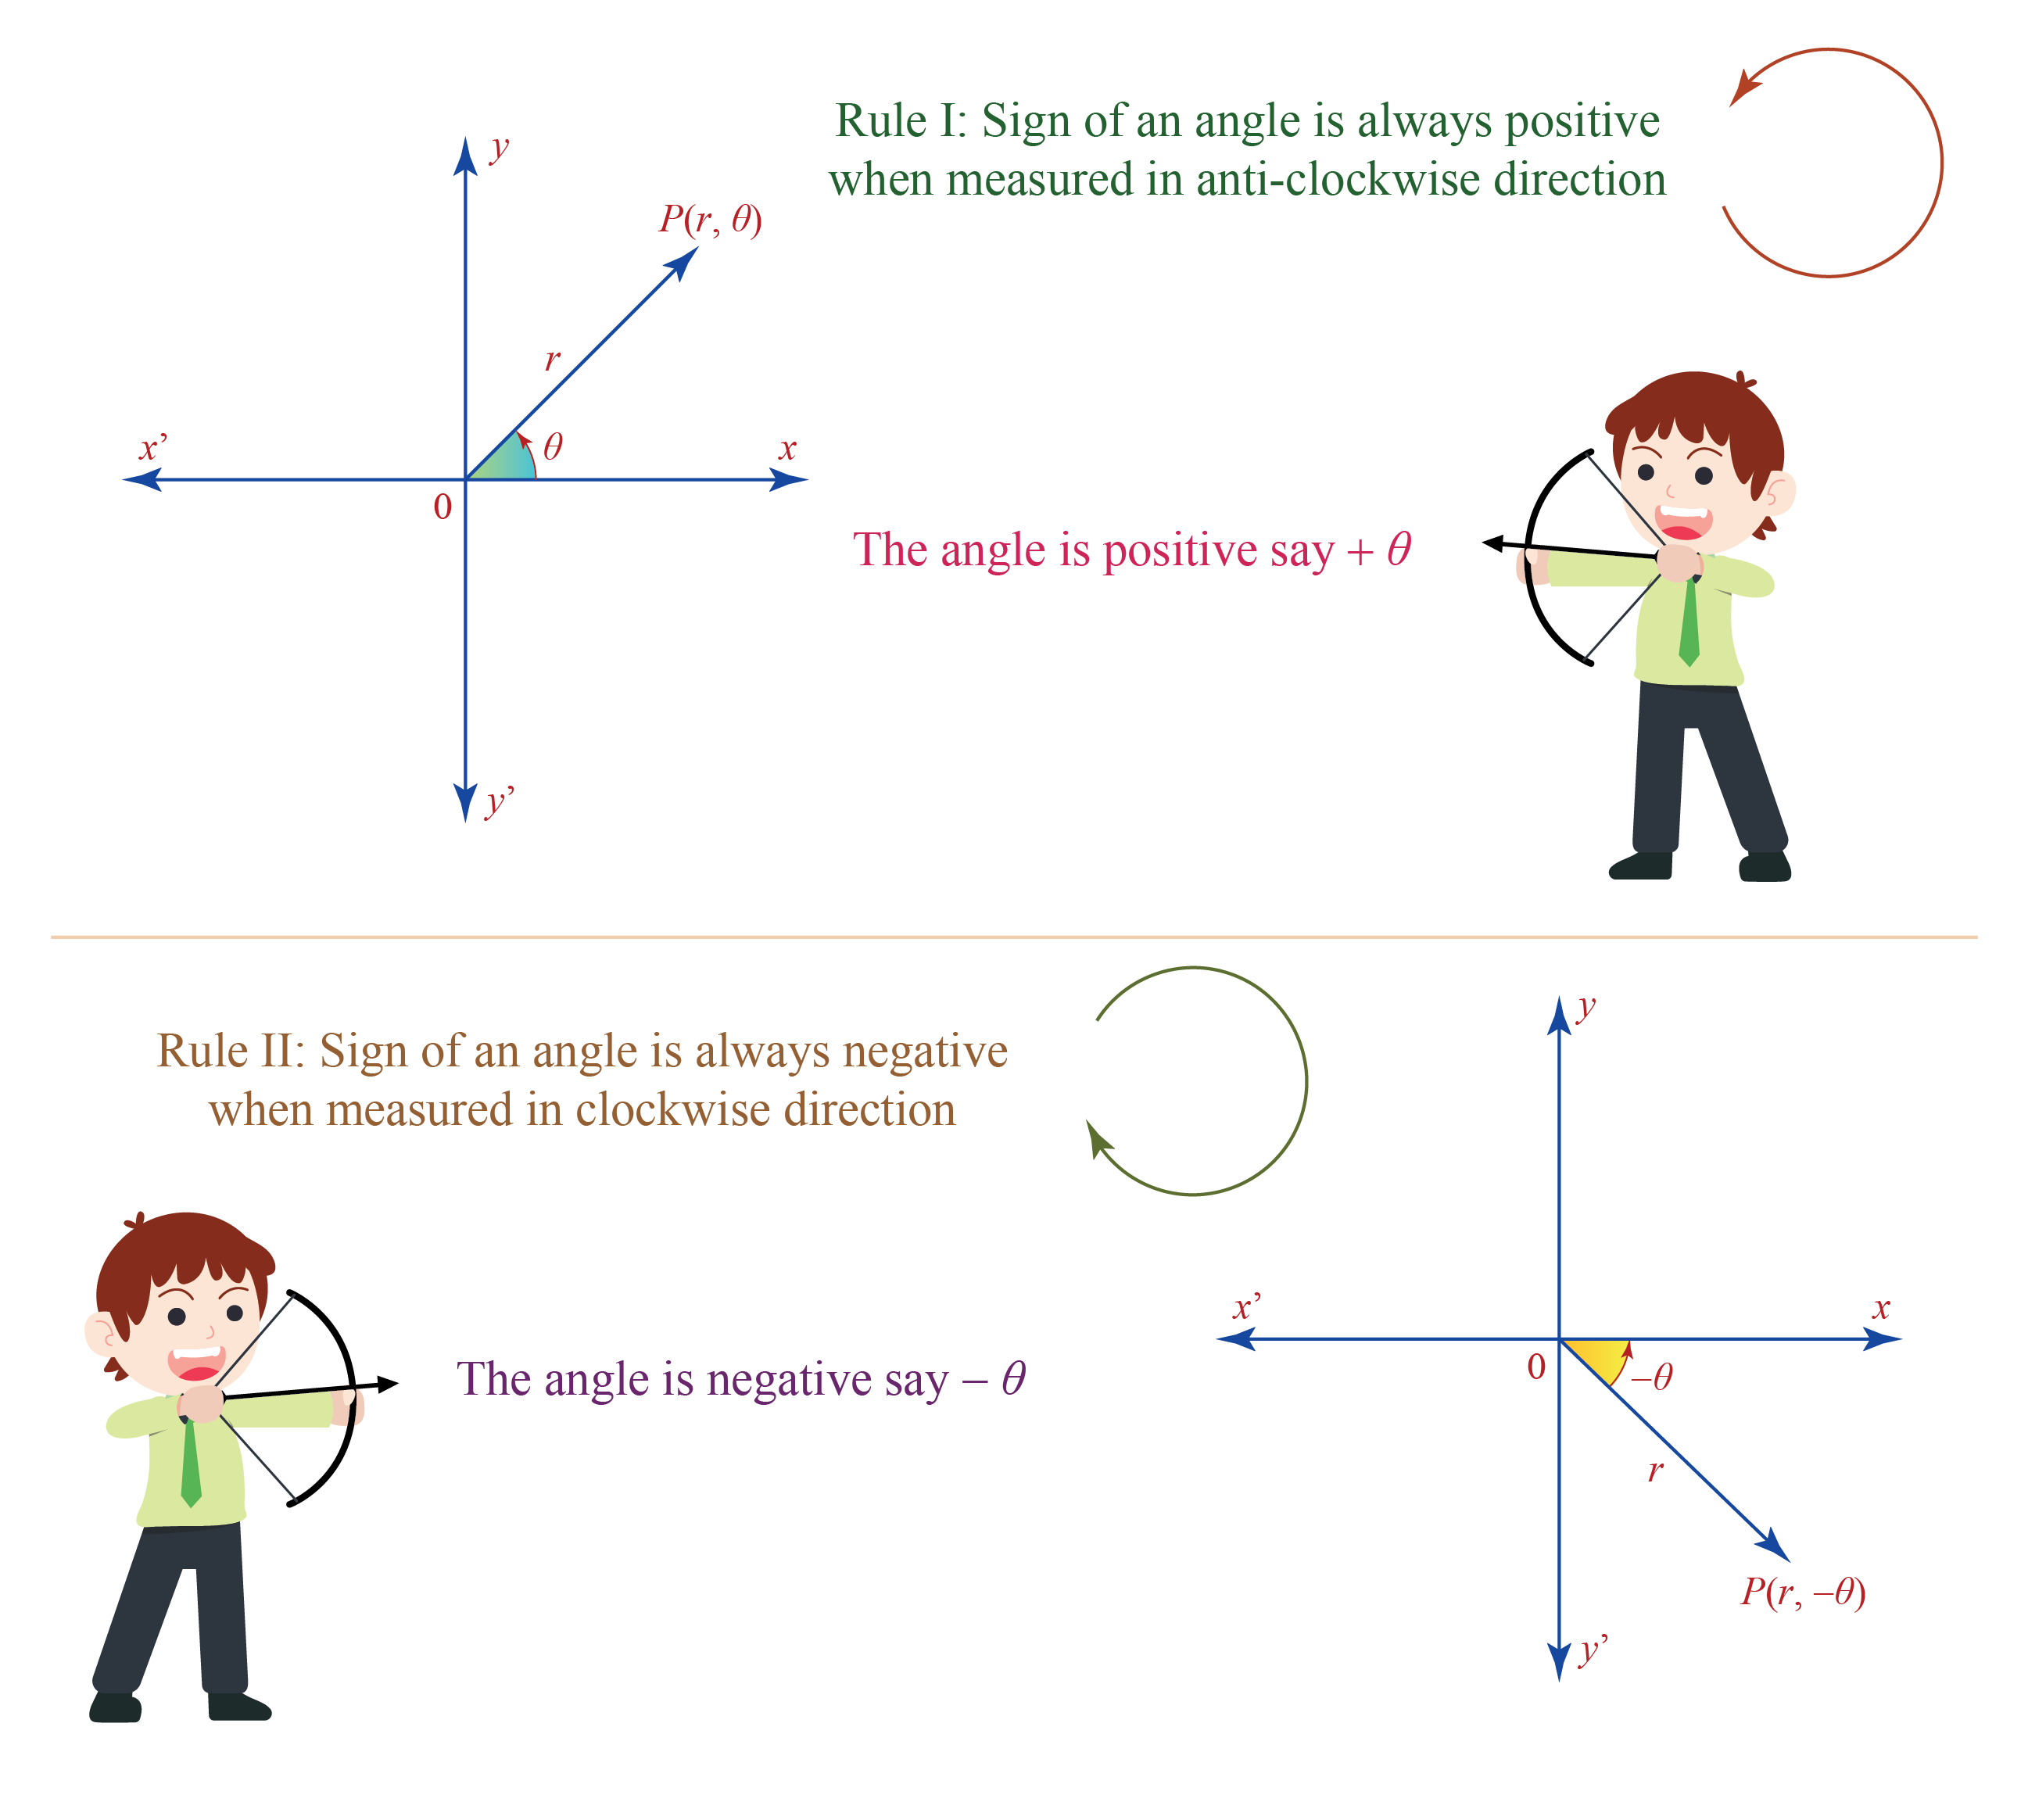 difference between negative angles and positive angles